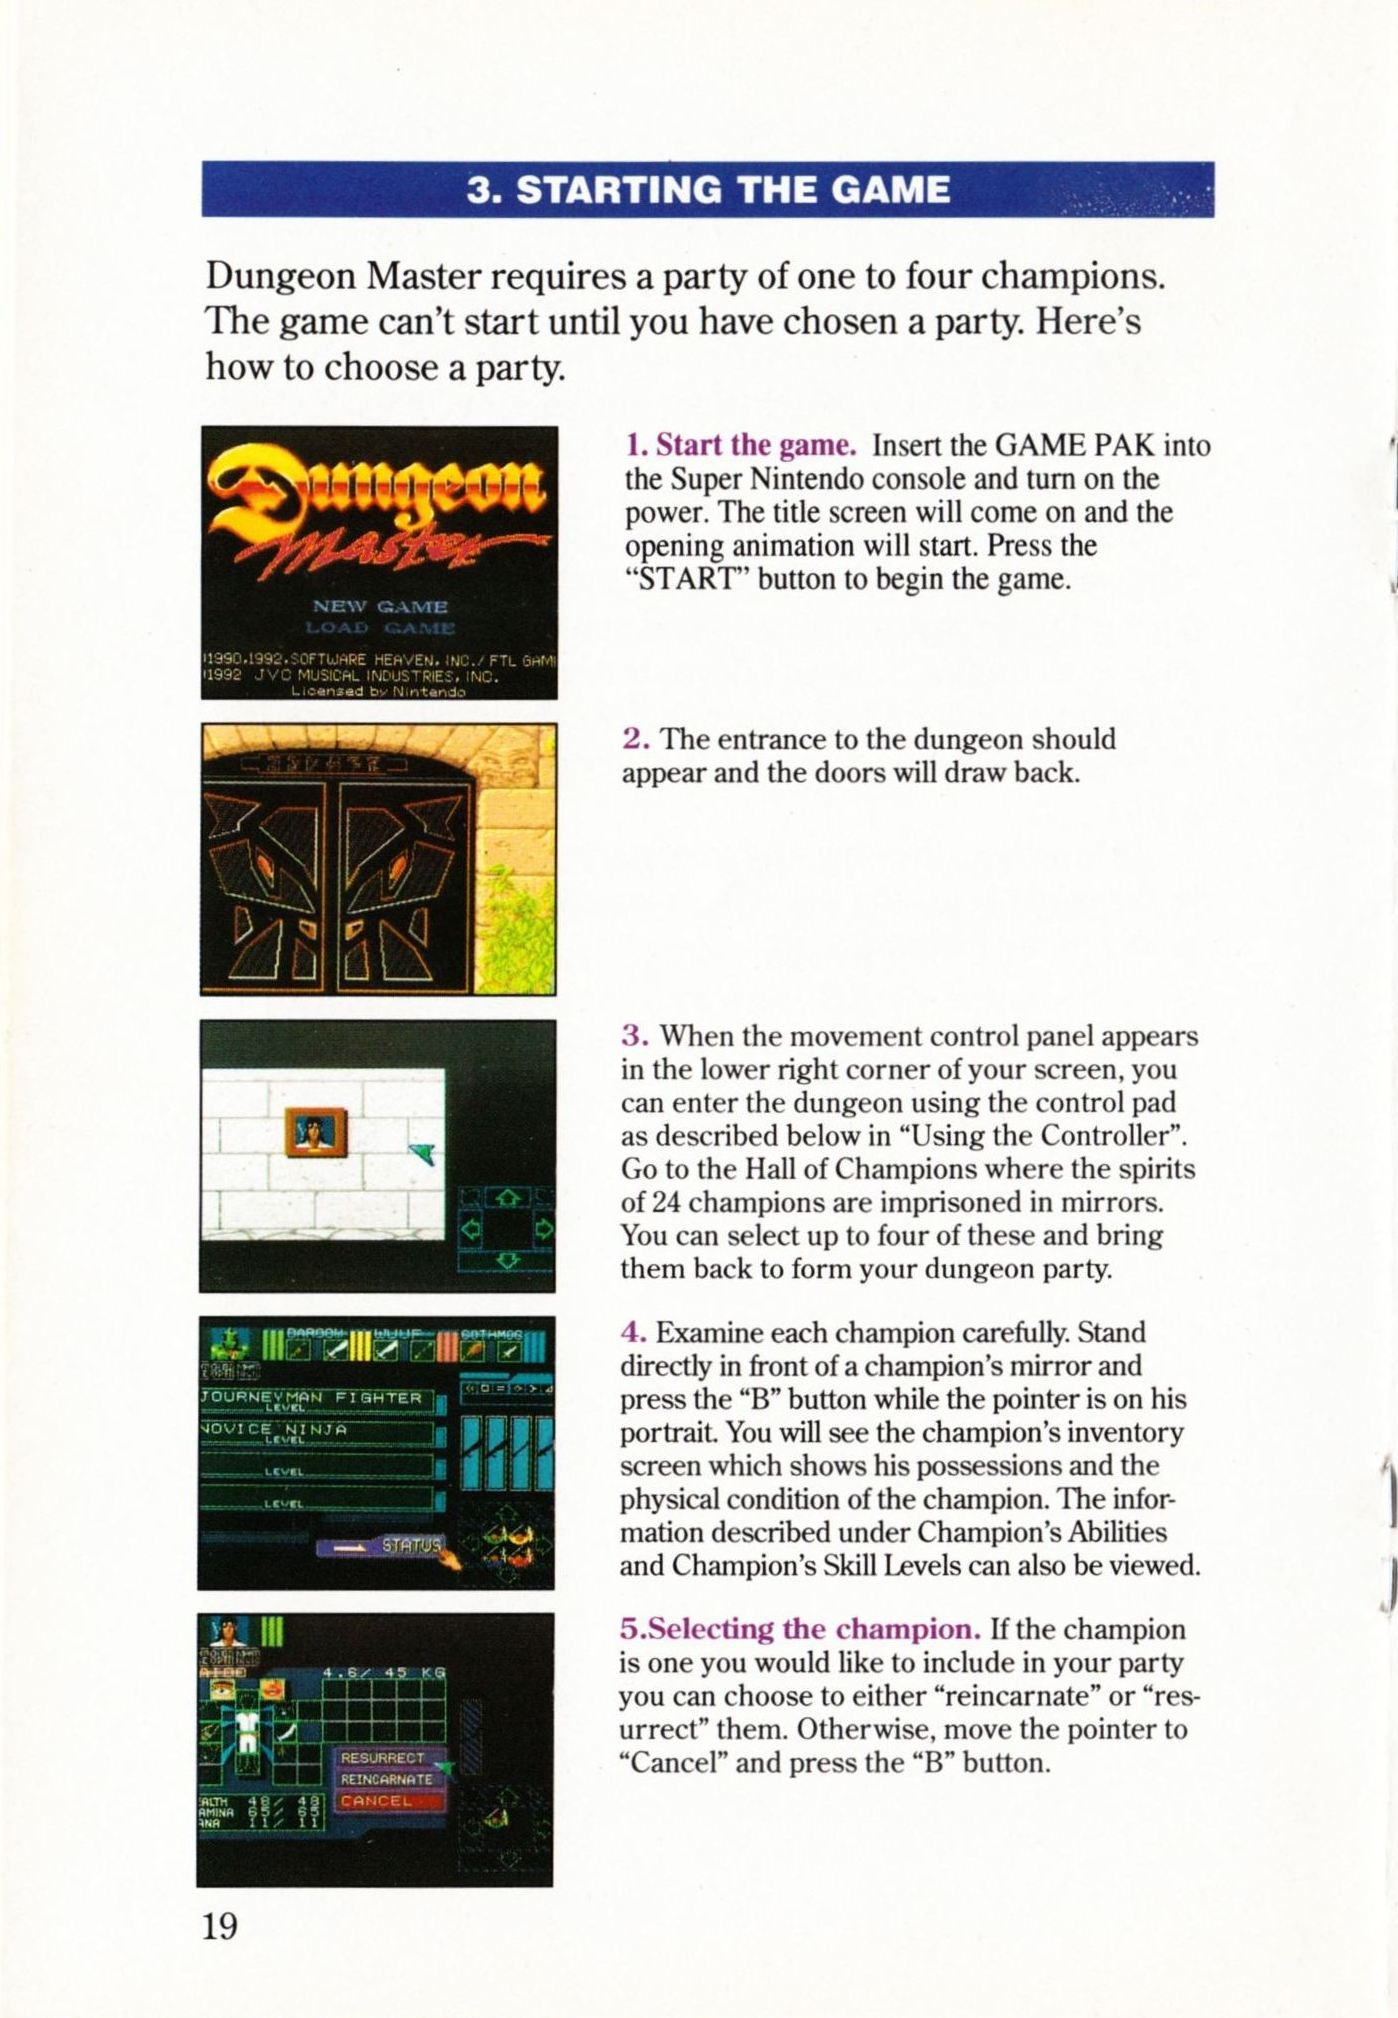 Game - Dungeon Master - US - Super NES - Manual - Page 022 - Scan